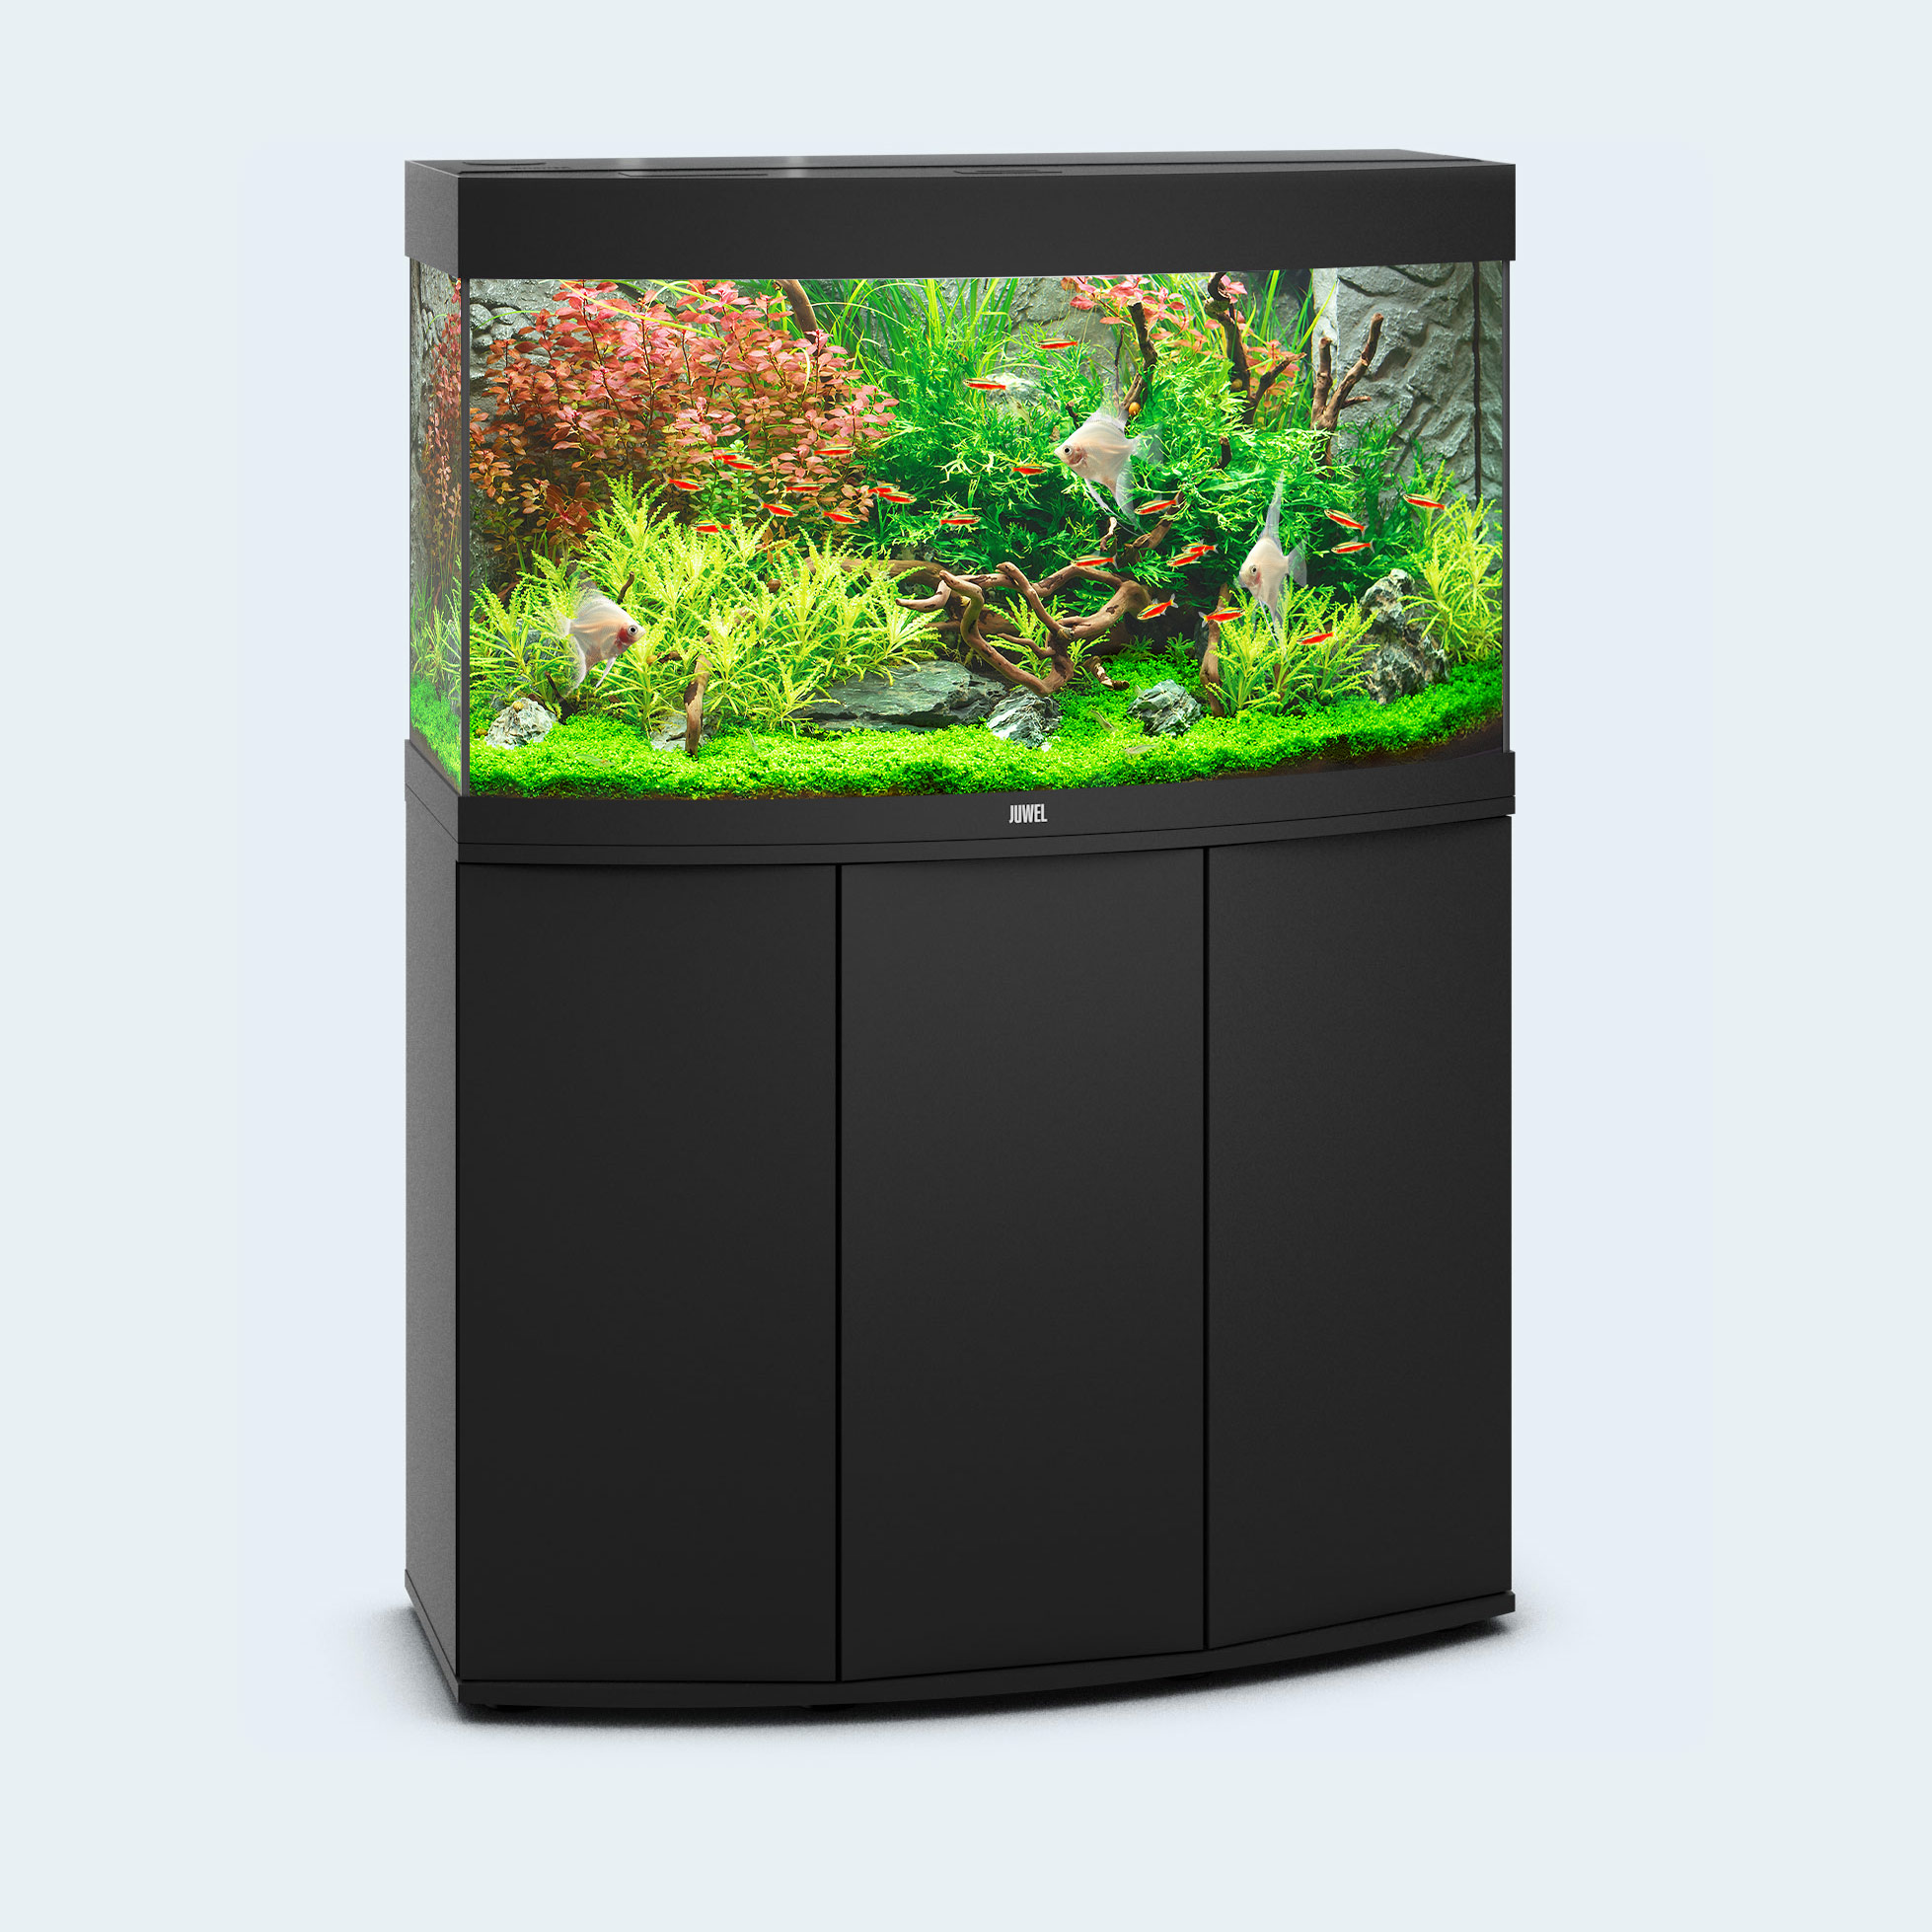 juwel aquarium vision 180 led purchase online. Black Bedroom Furniture Sets. Home Design Ideas